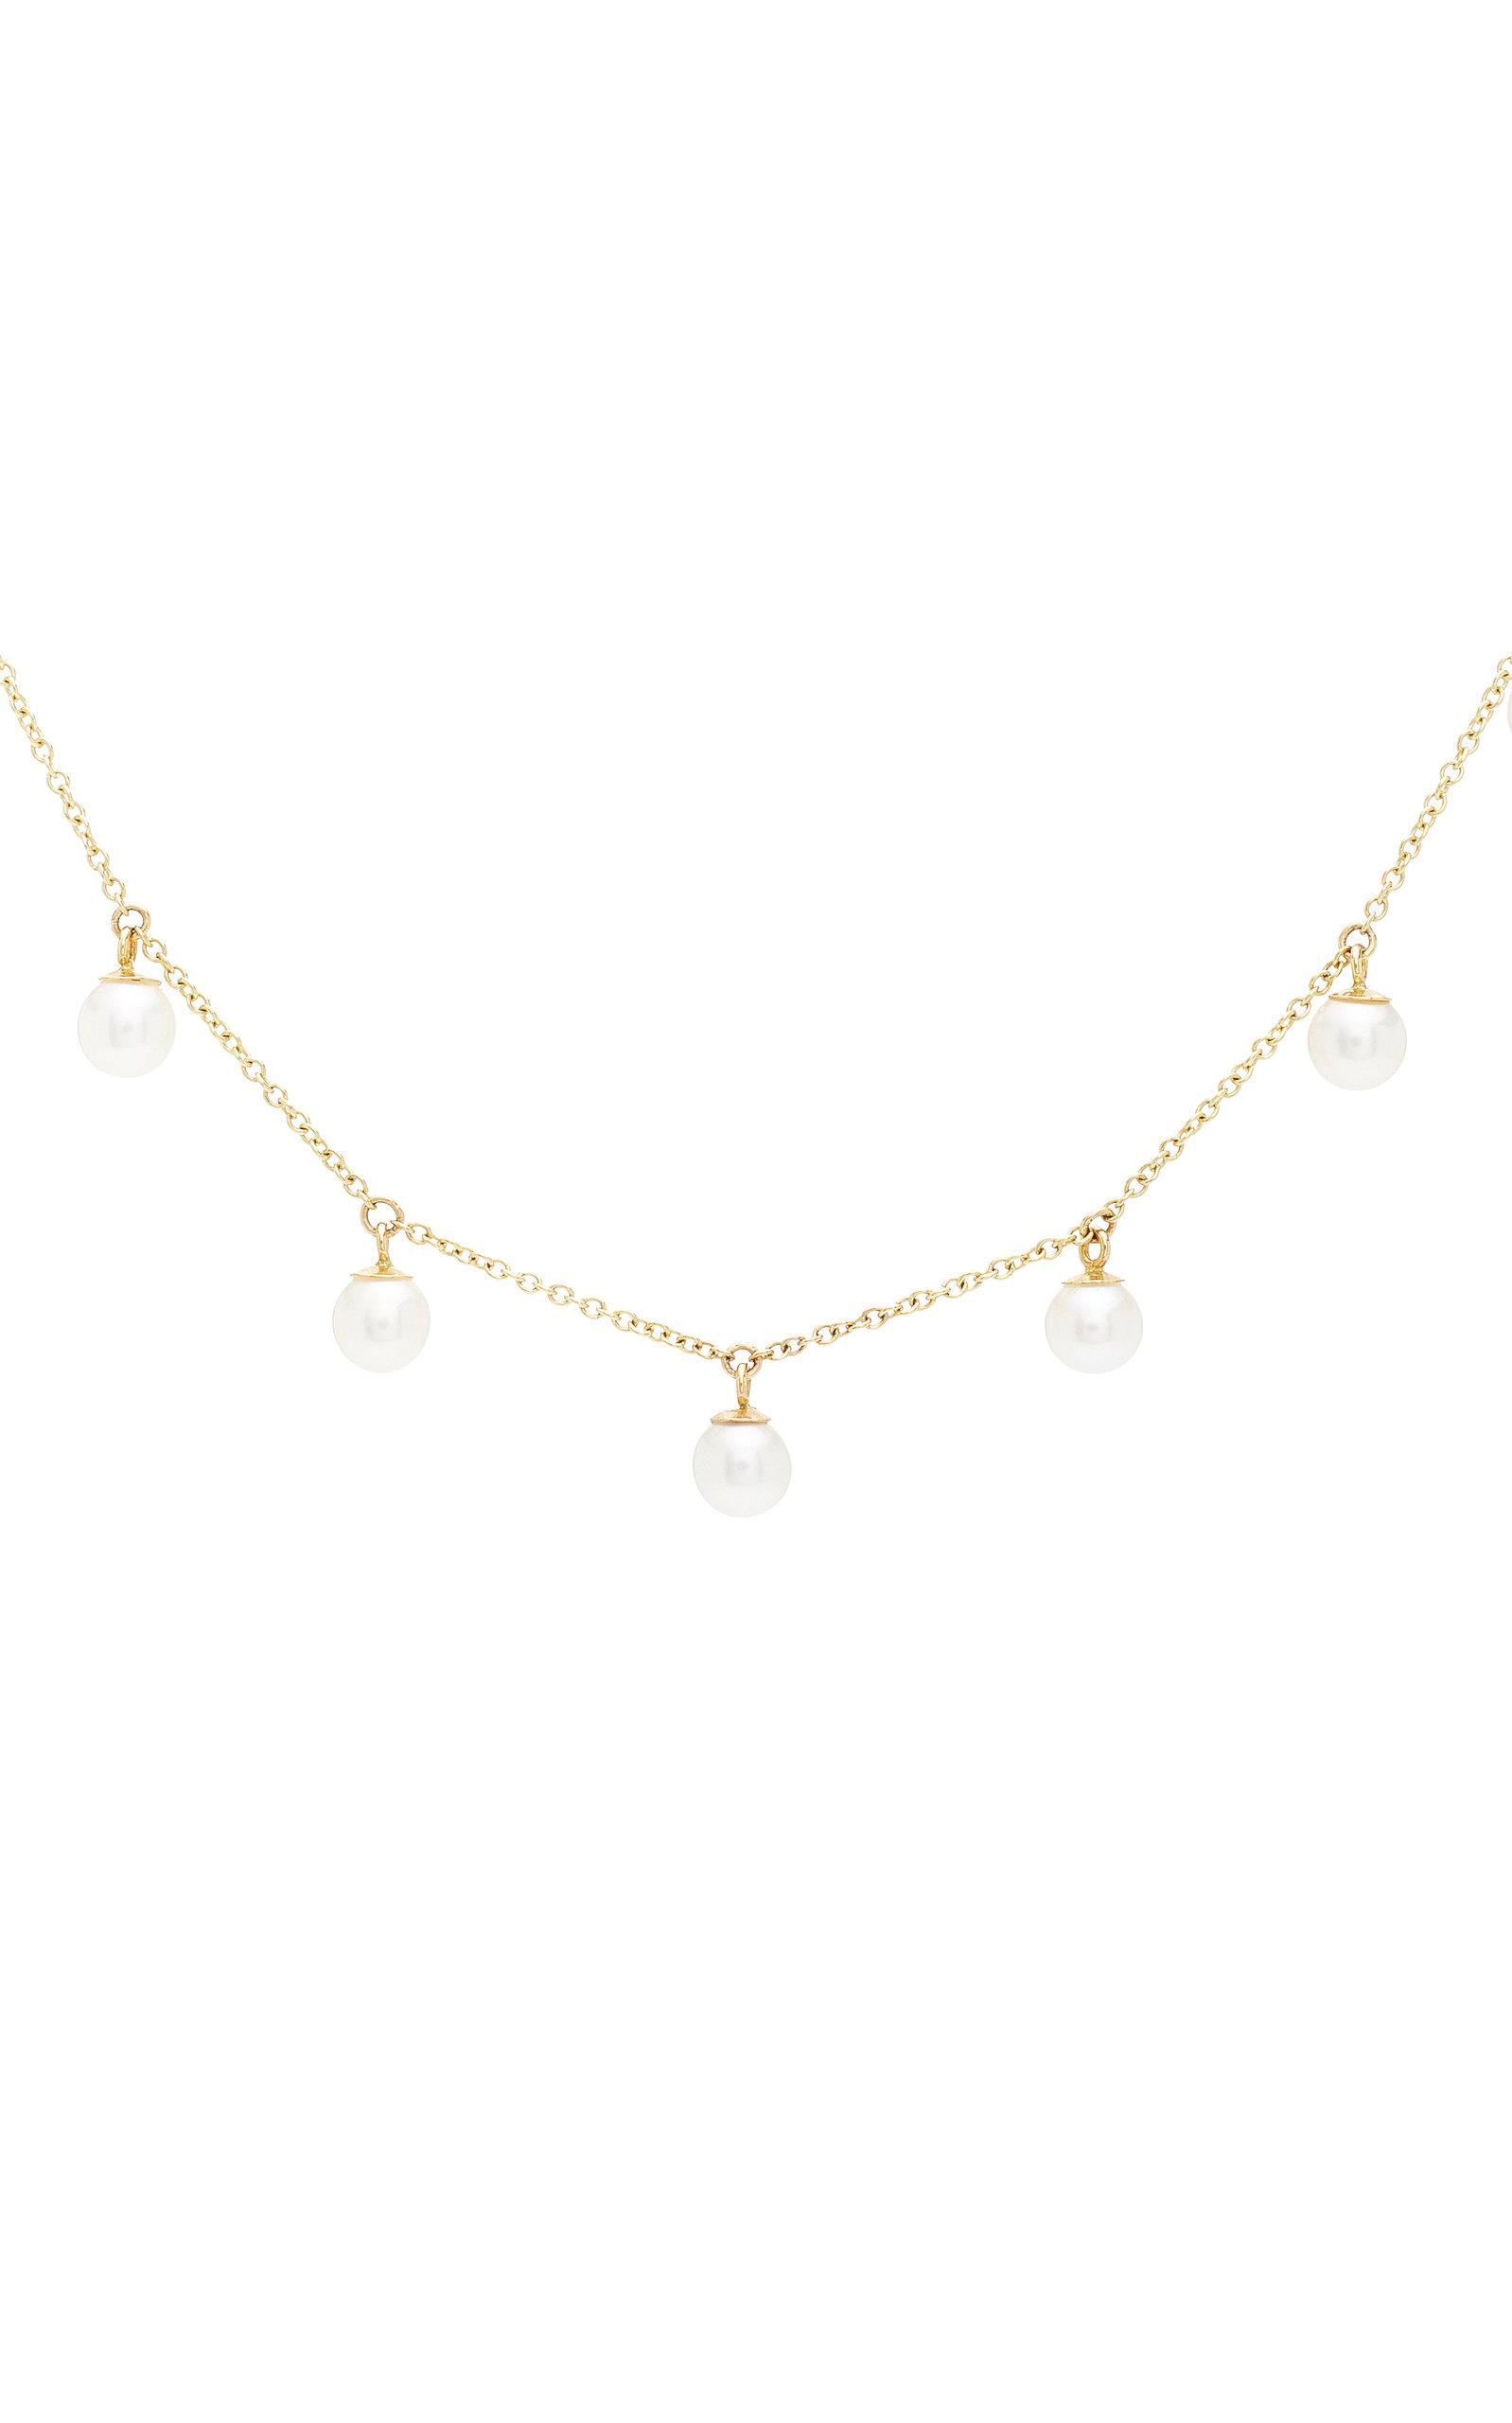 Zoe Chicco 14k Dangling Pearl Choker Necklace in Gold (Metallic)